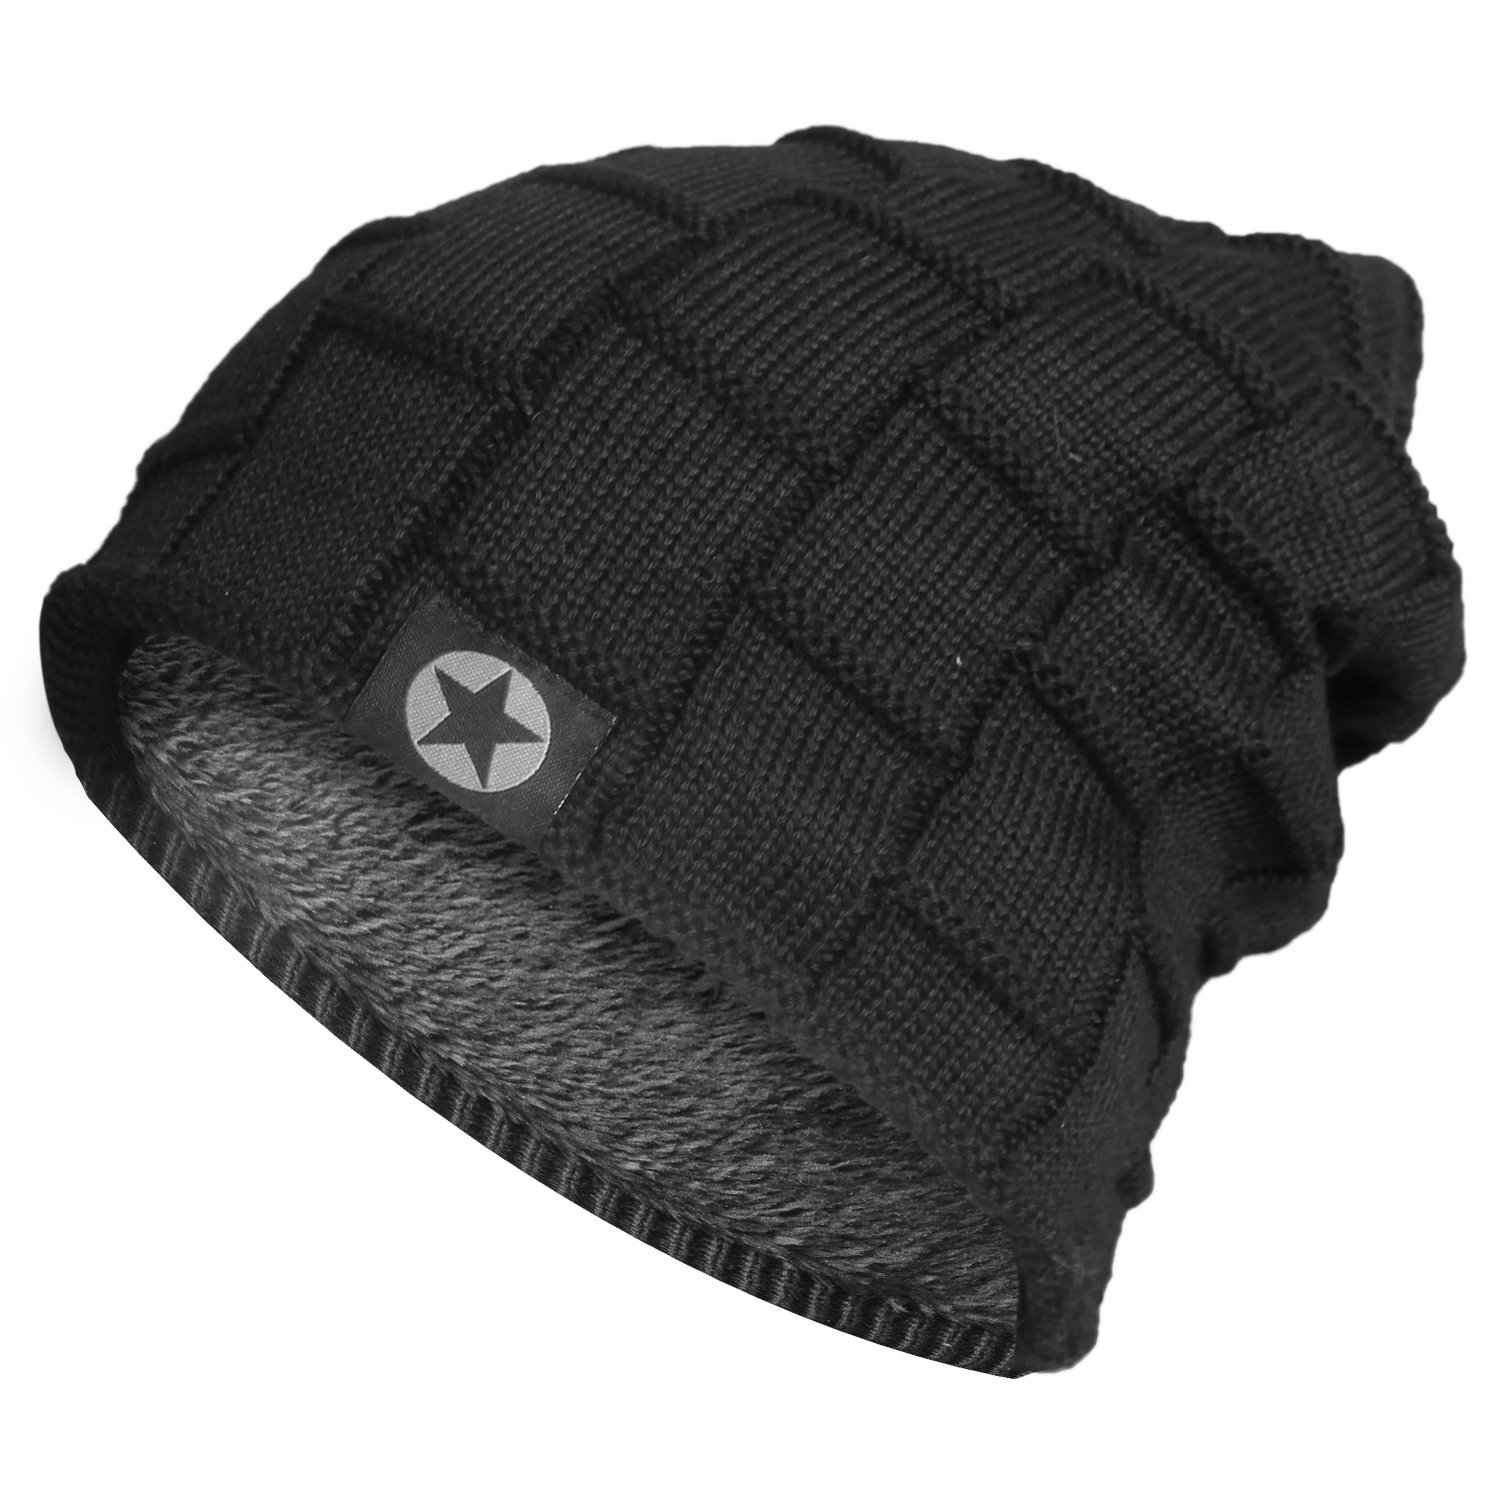 c88eff43123 DG Hill Mens Winter Hat and Gloves Set with 3M Thinsulate Fleece Lining  Beanie Black One ...